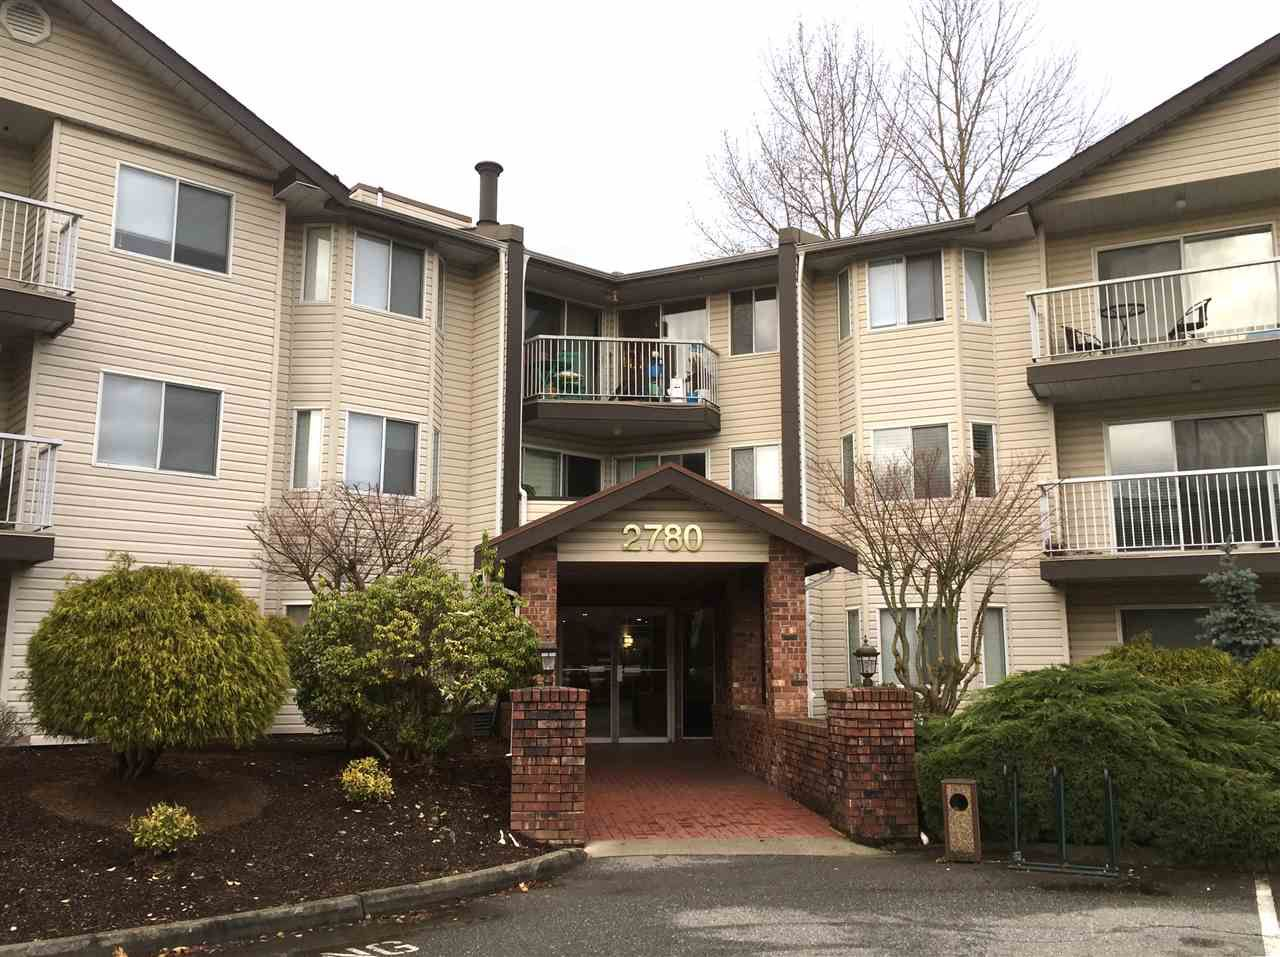 """Main Photo: 106 2780 WARE Street in Abbotsford: Central Abbotsford Condo for sale in """"Chelsea House"""" : MLS®# R2149005"""